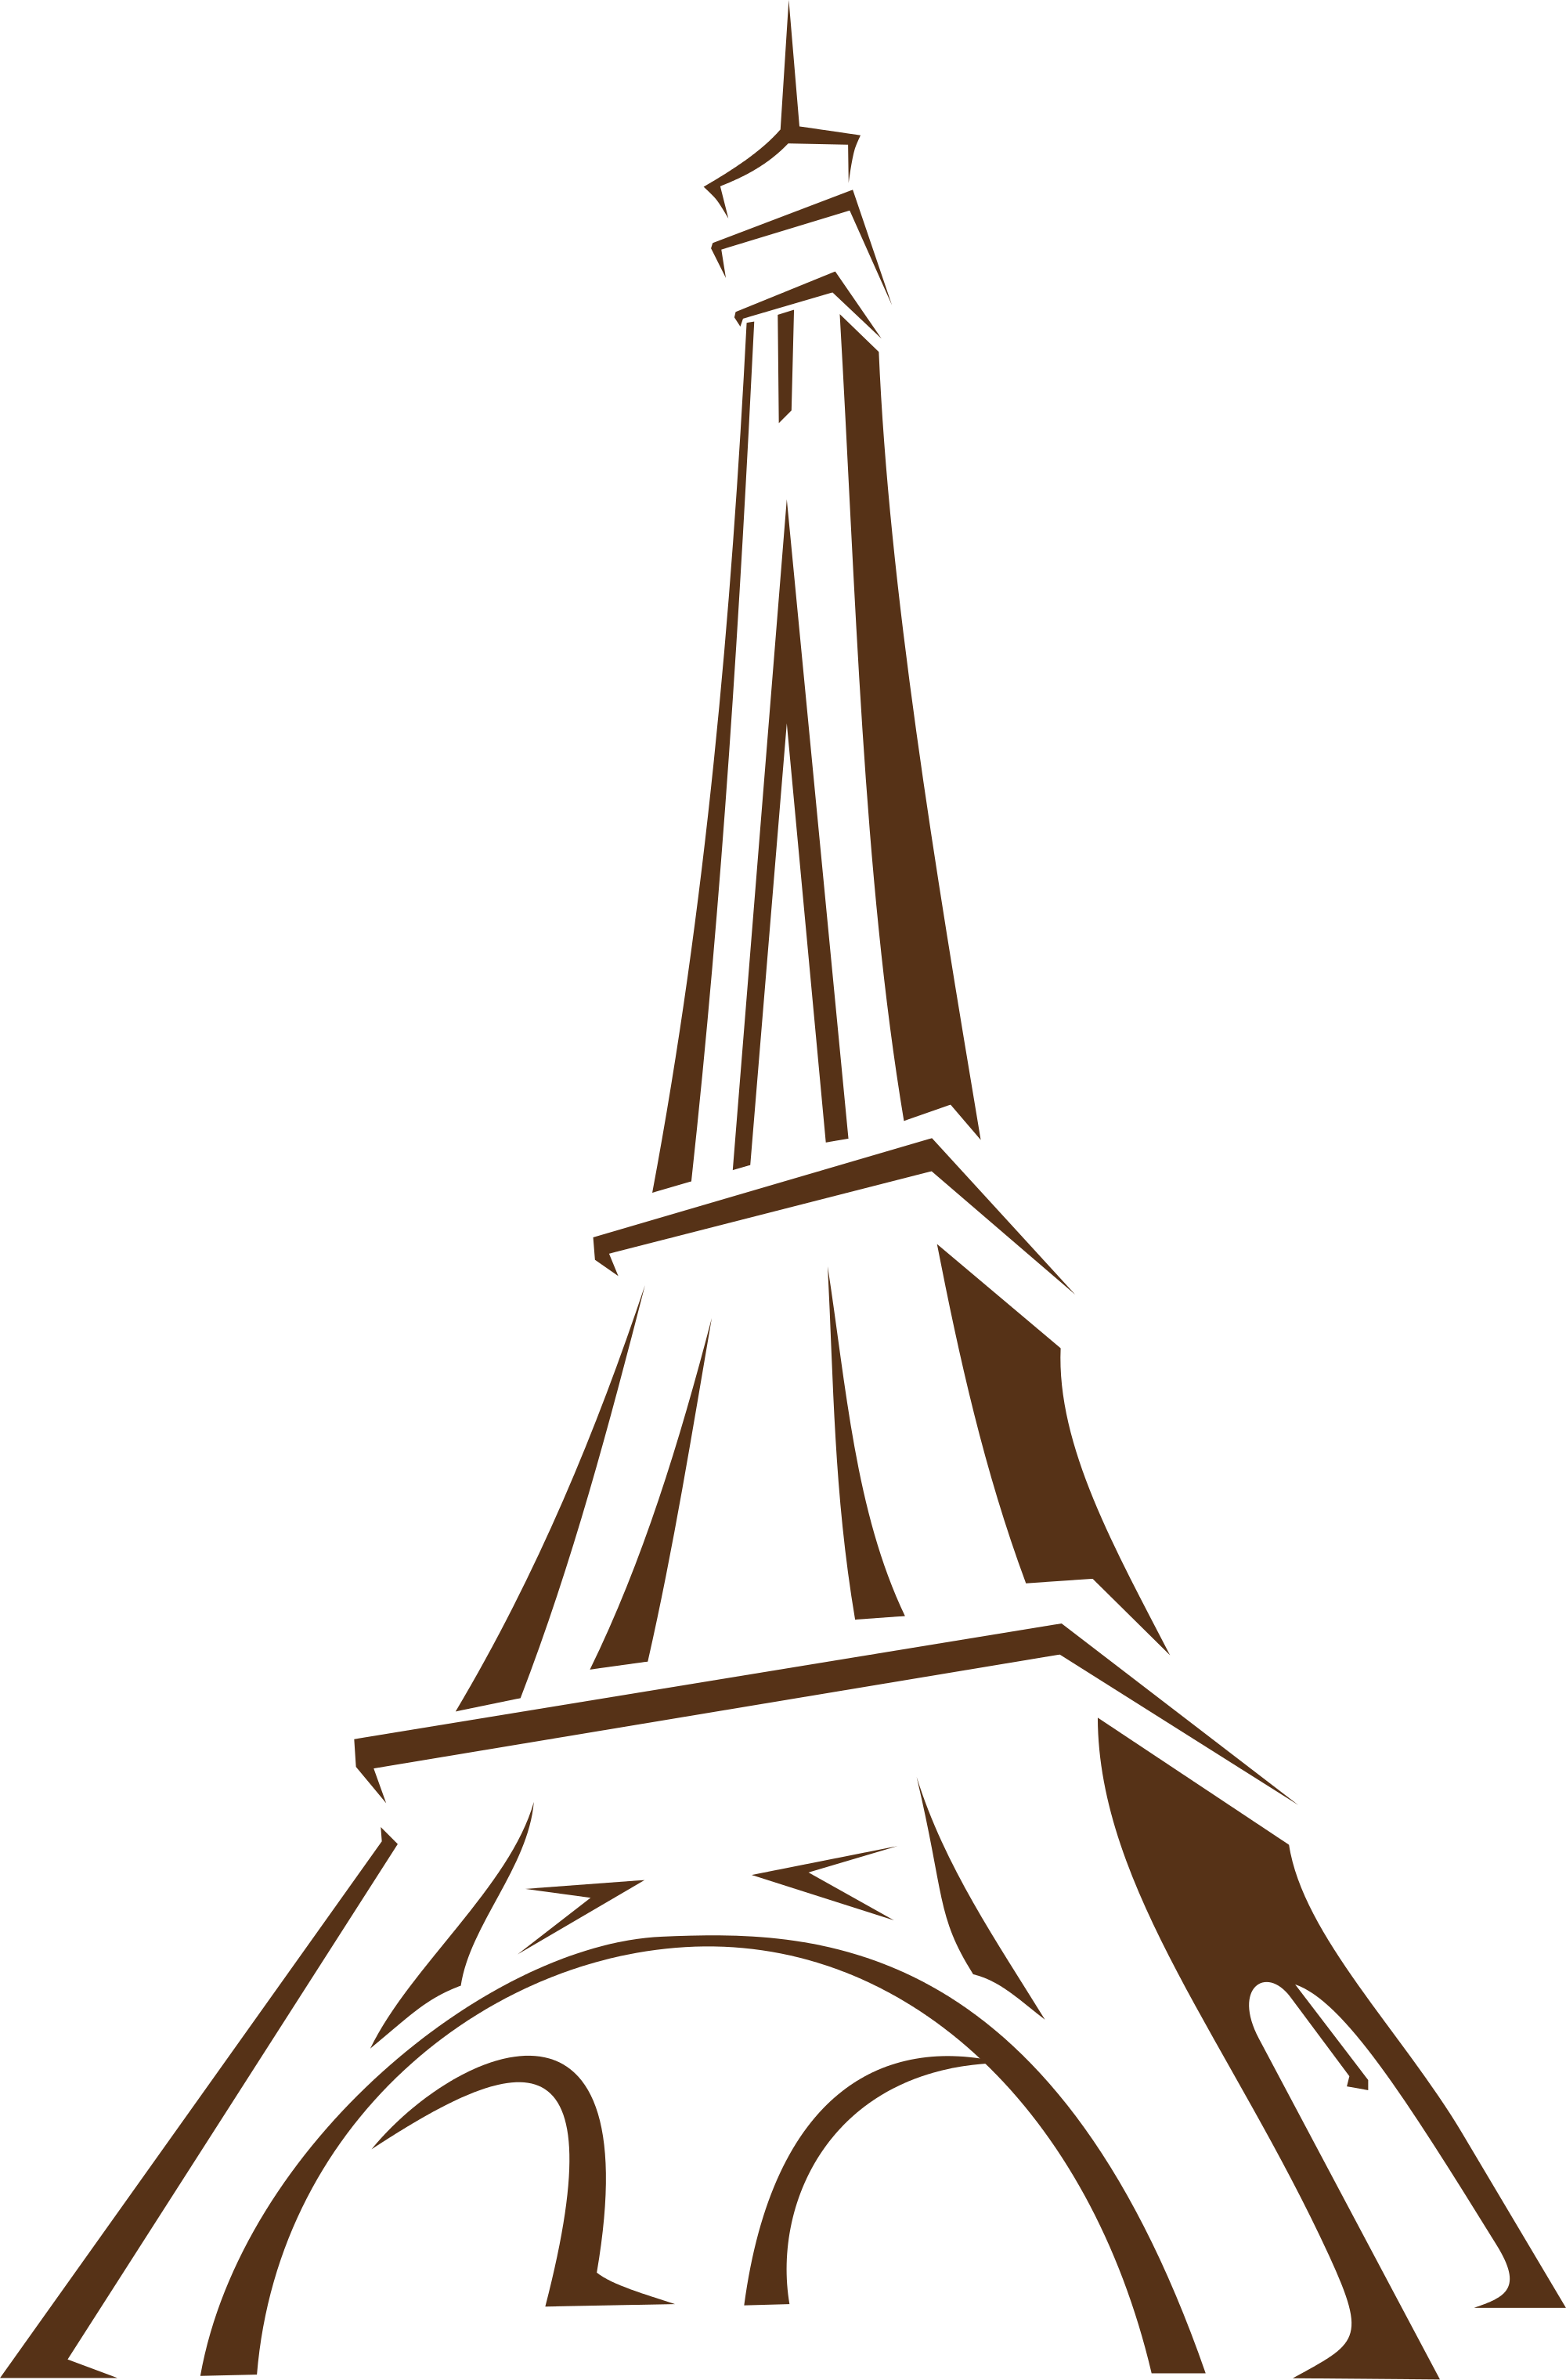 Eiffel Tower svg #7, Download drawings